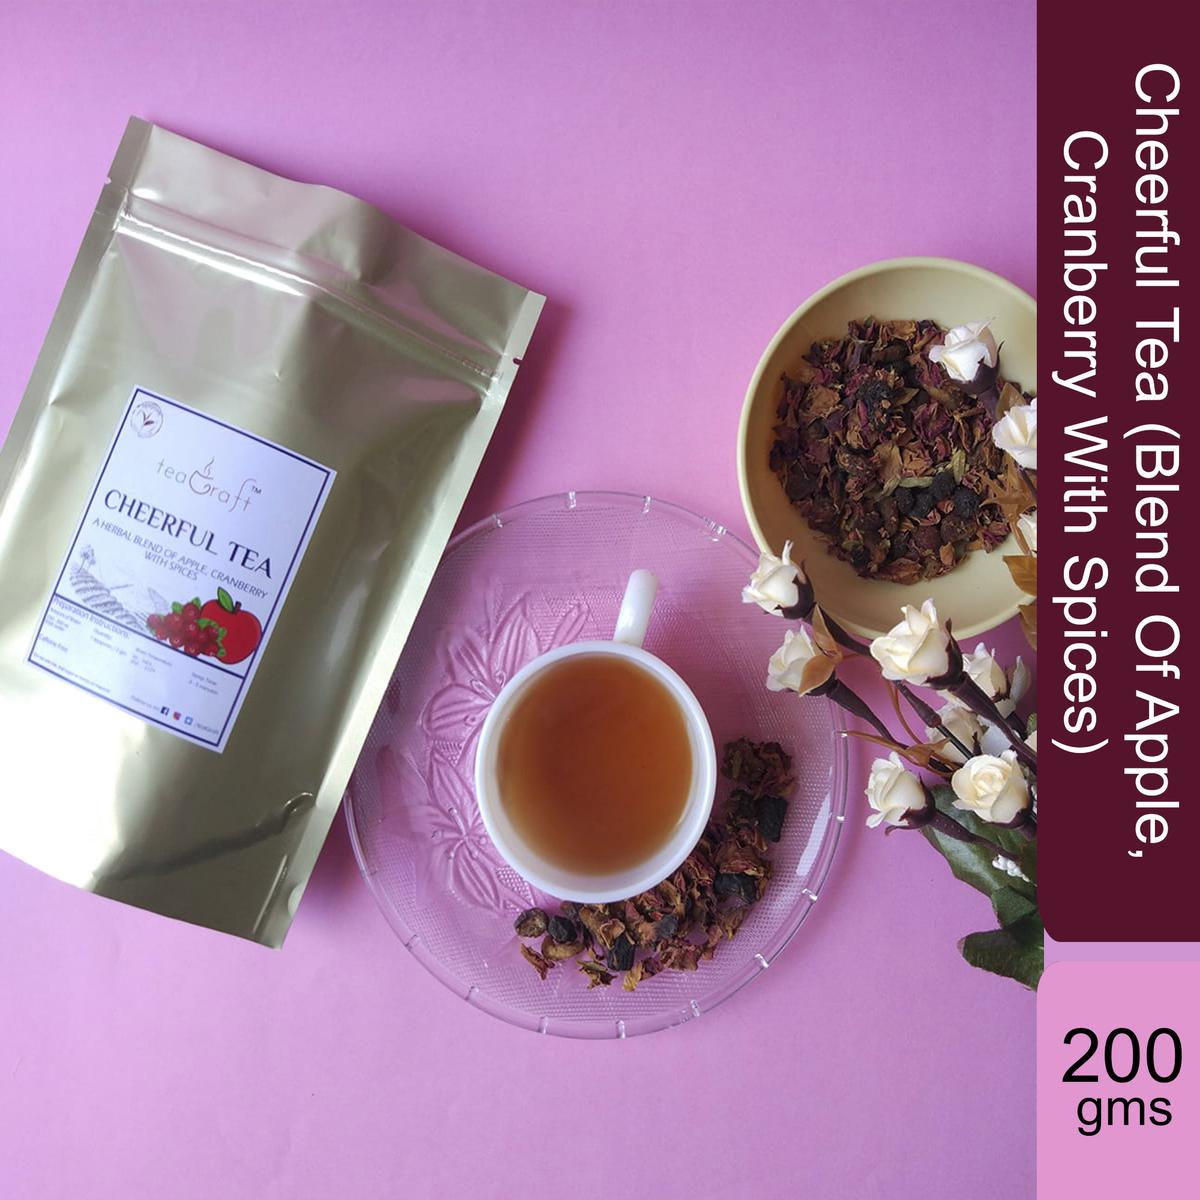 Cheerful Tea (Blend Of Apple, Cranberry With Spices) - 200 Gms